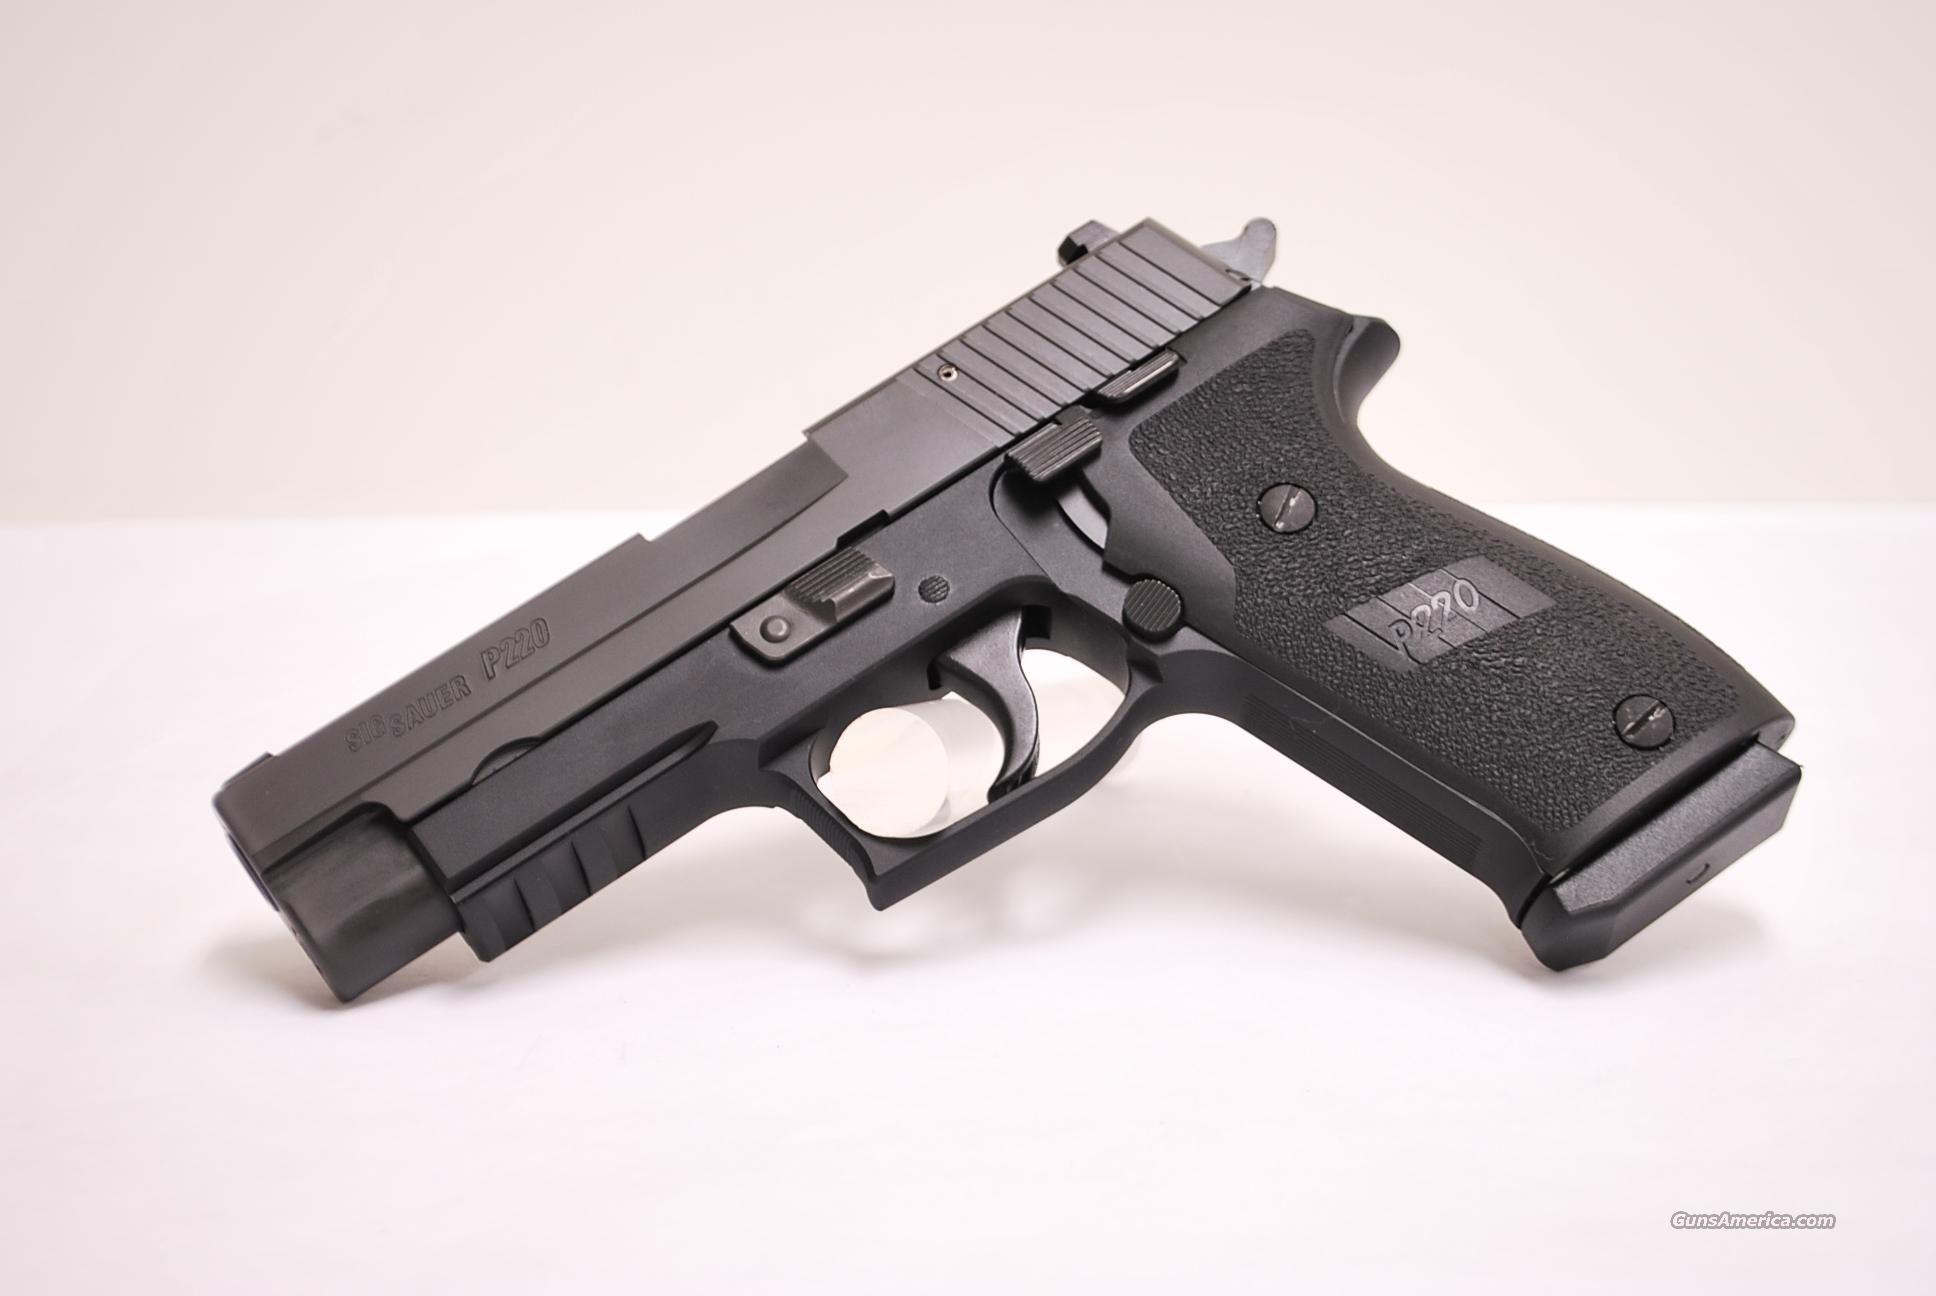 Sig Sauer P220, .45 ACP with Night Sights  Guns > Pistols > Sig - Sauer/Sigarms Pistols > P220